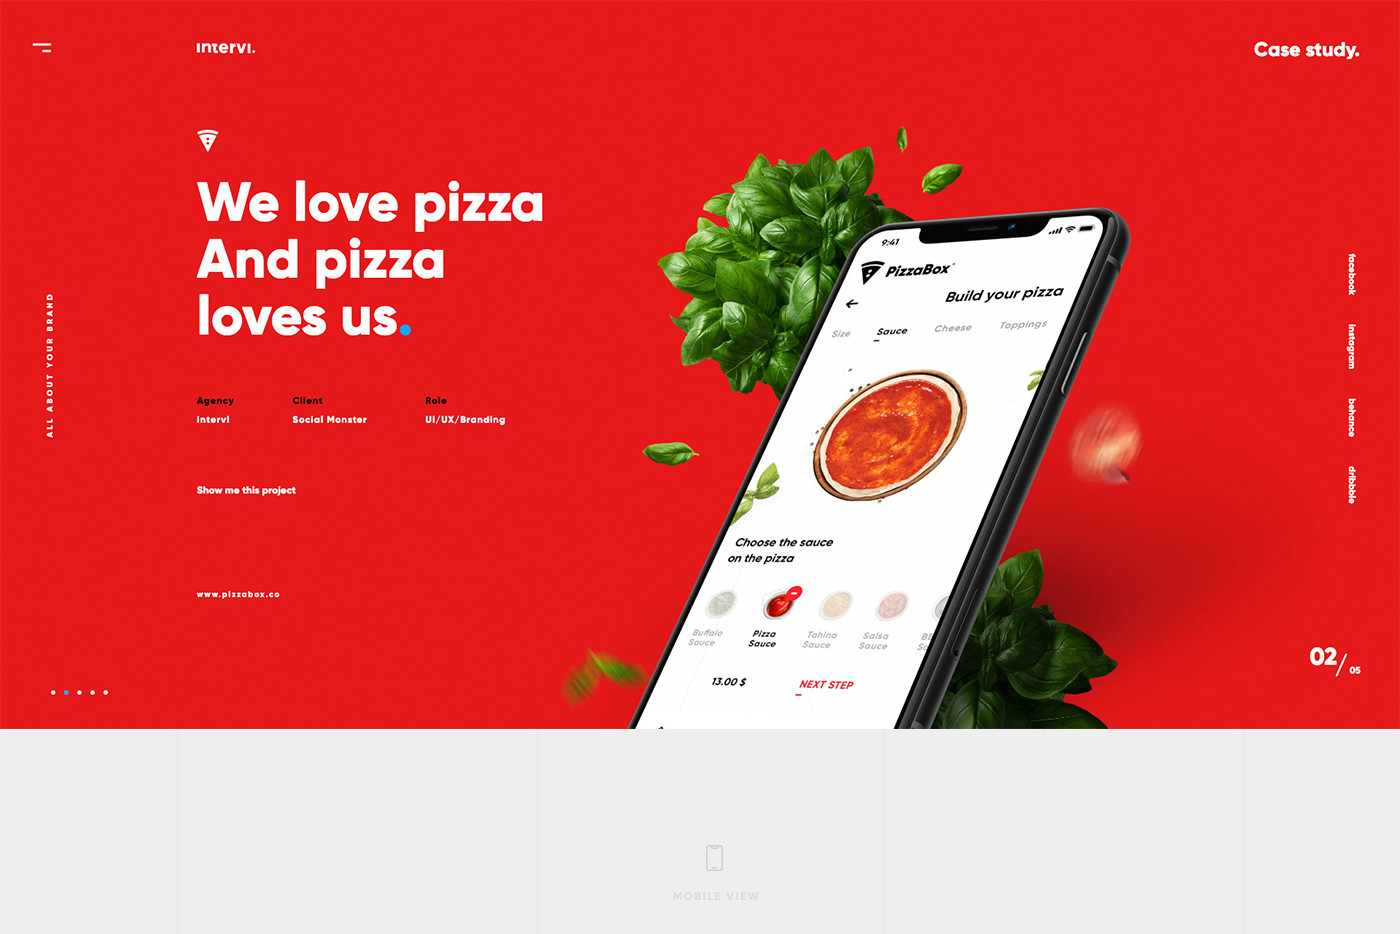 Screen sekcji PizzaBox